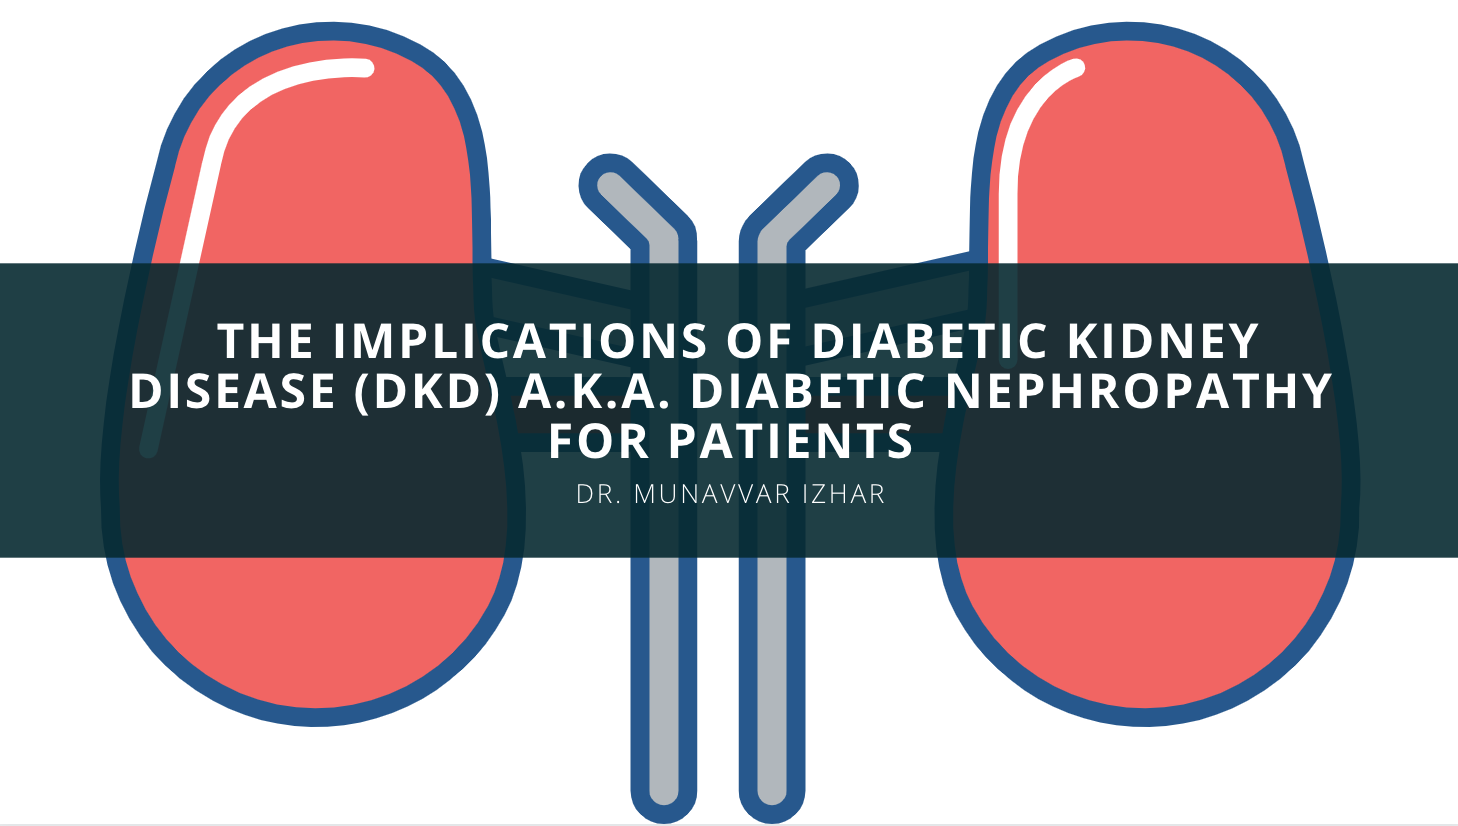 Dr. Munavvar Izhar Discusses the Implications of Diabetic Kidney Disease (DKD) a.k.a. Diabetic Nephropathy for Patients